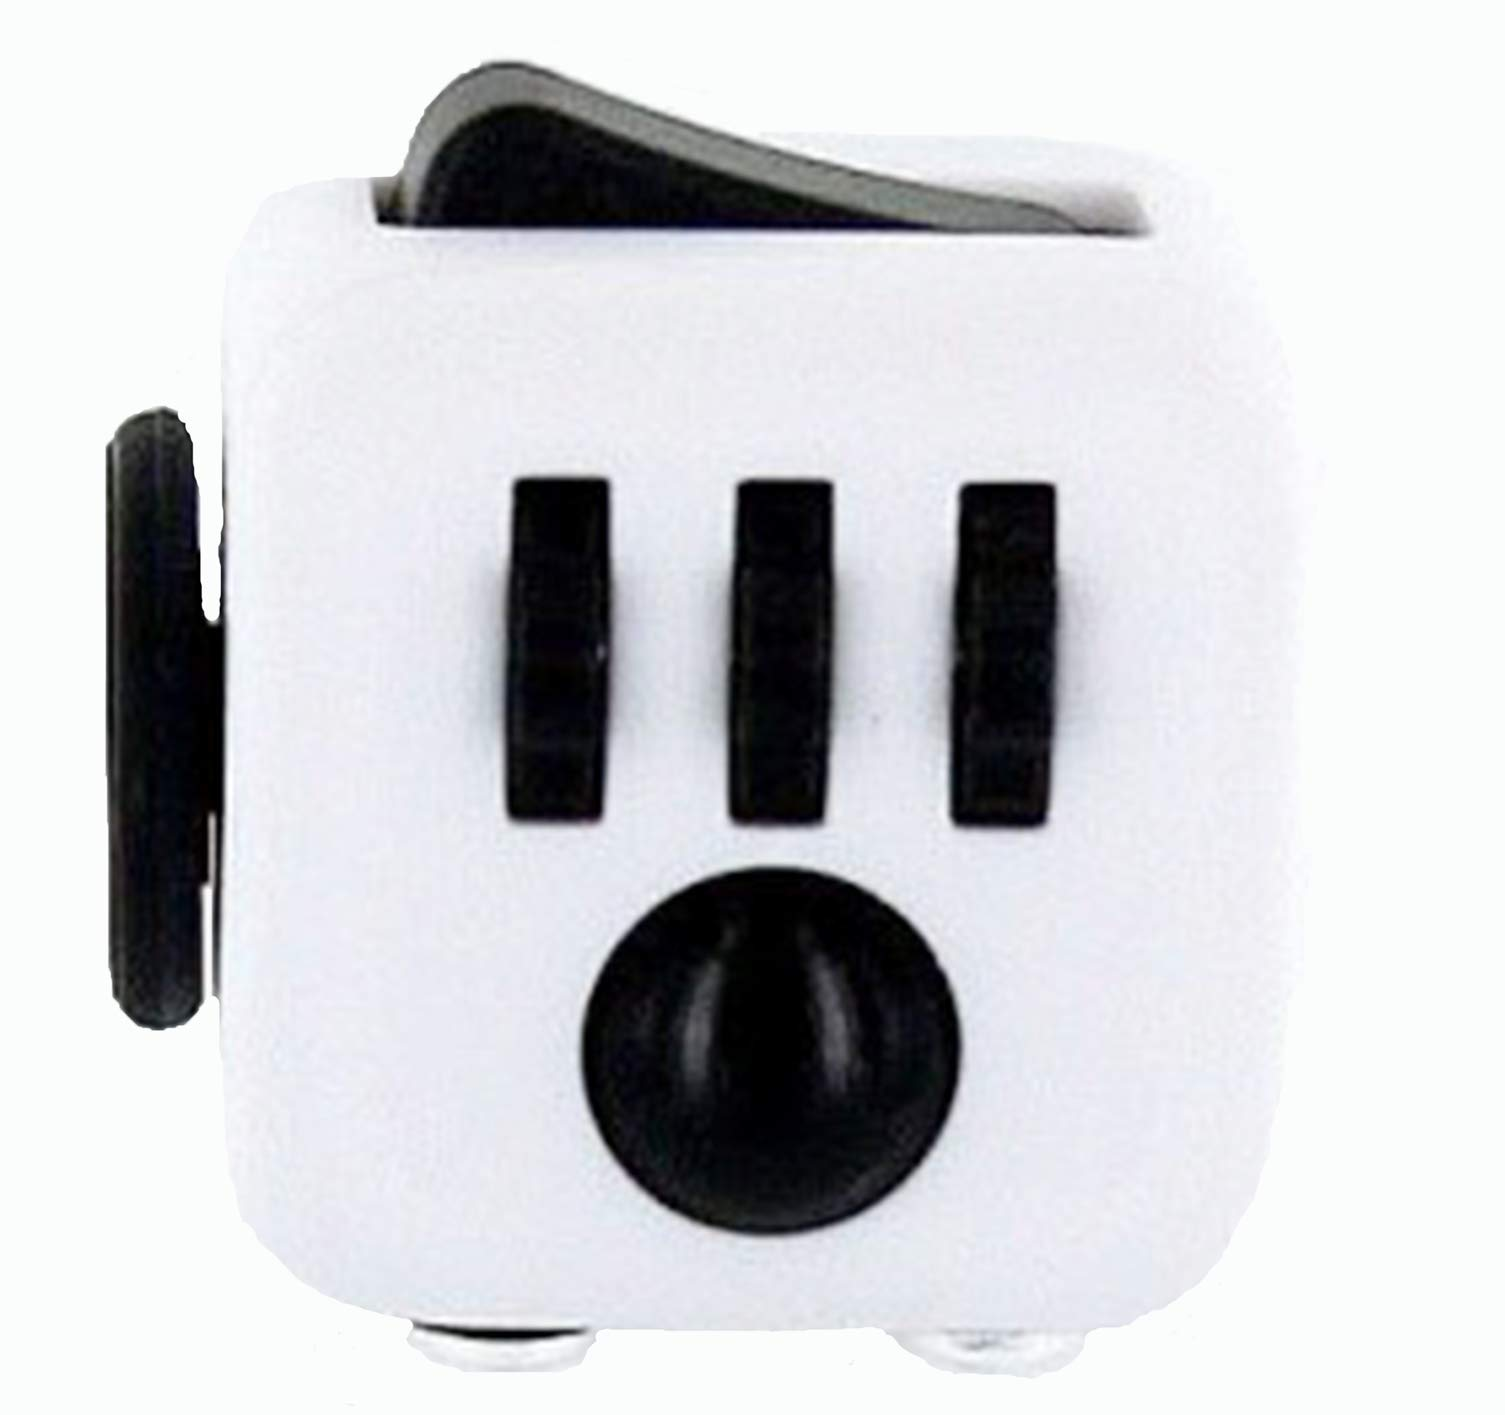 Antsy Labs Original Fidget Cube Dice (Black & White)